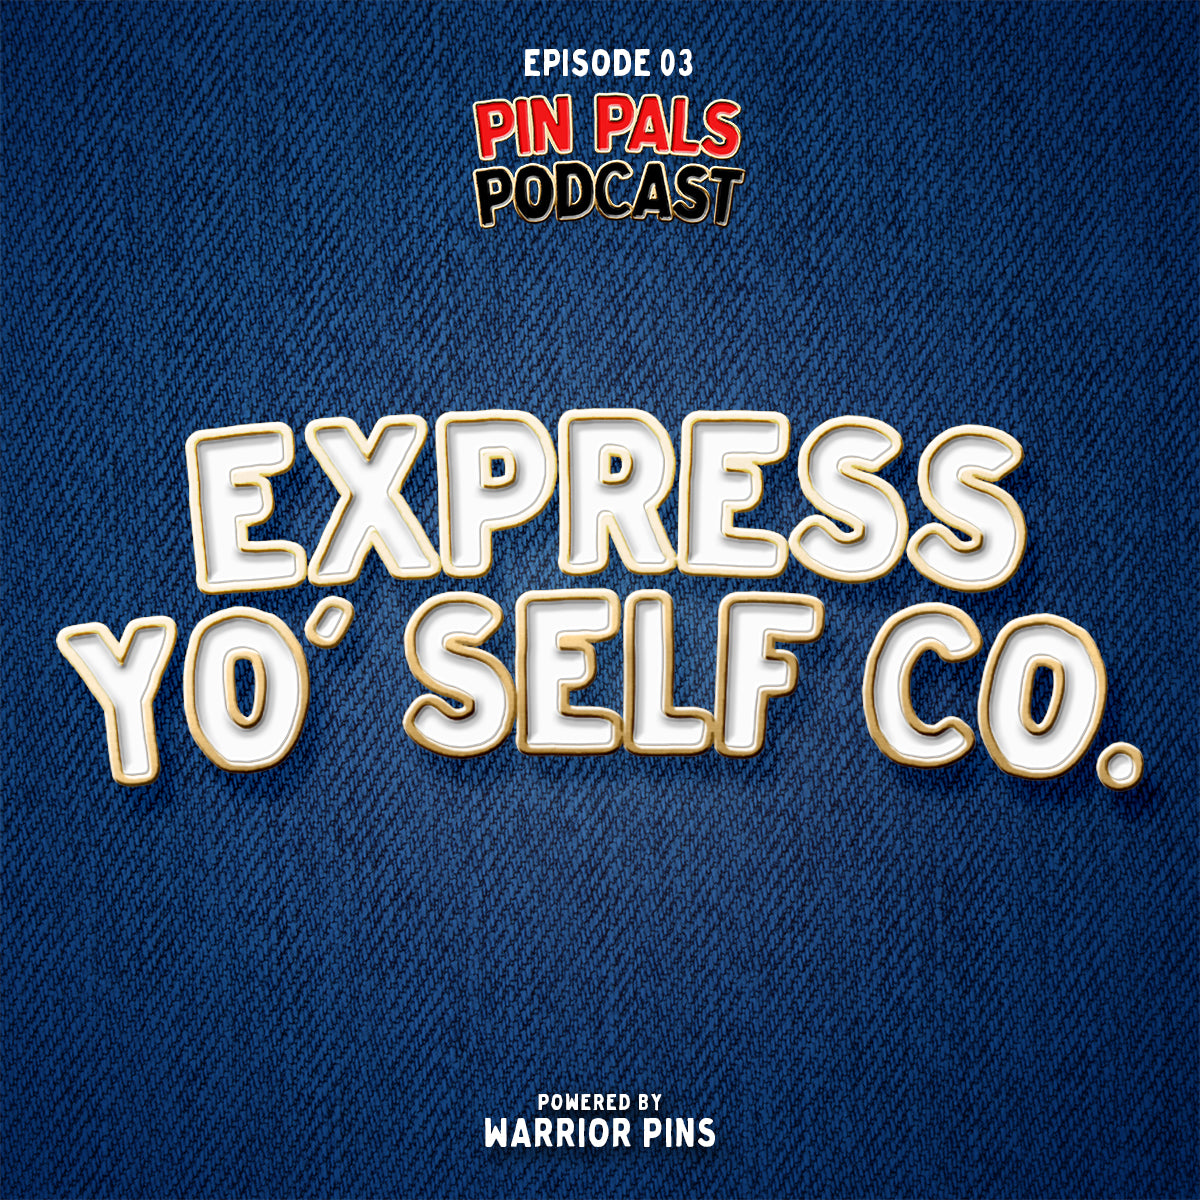 Ep 3 - Express Yo Self Co.